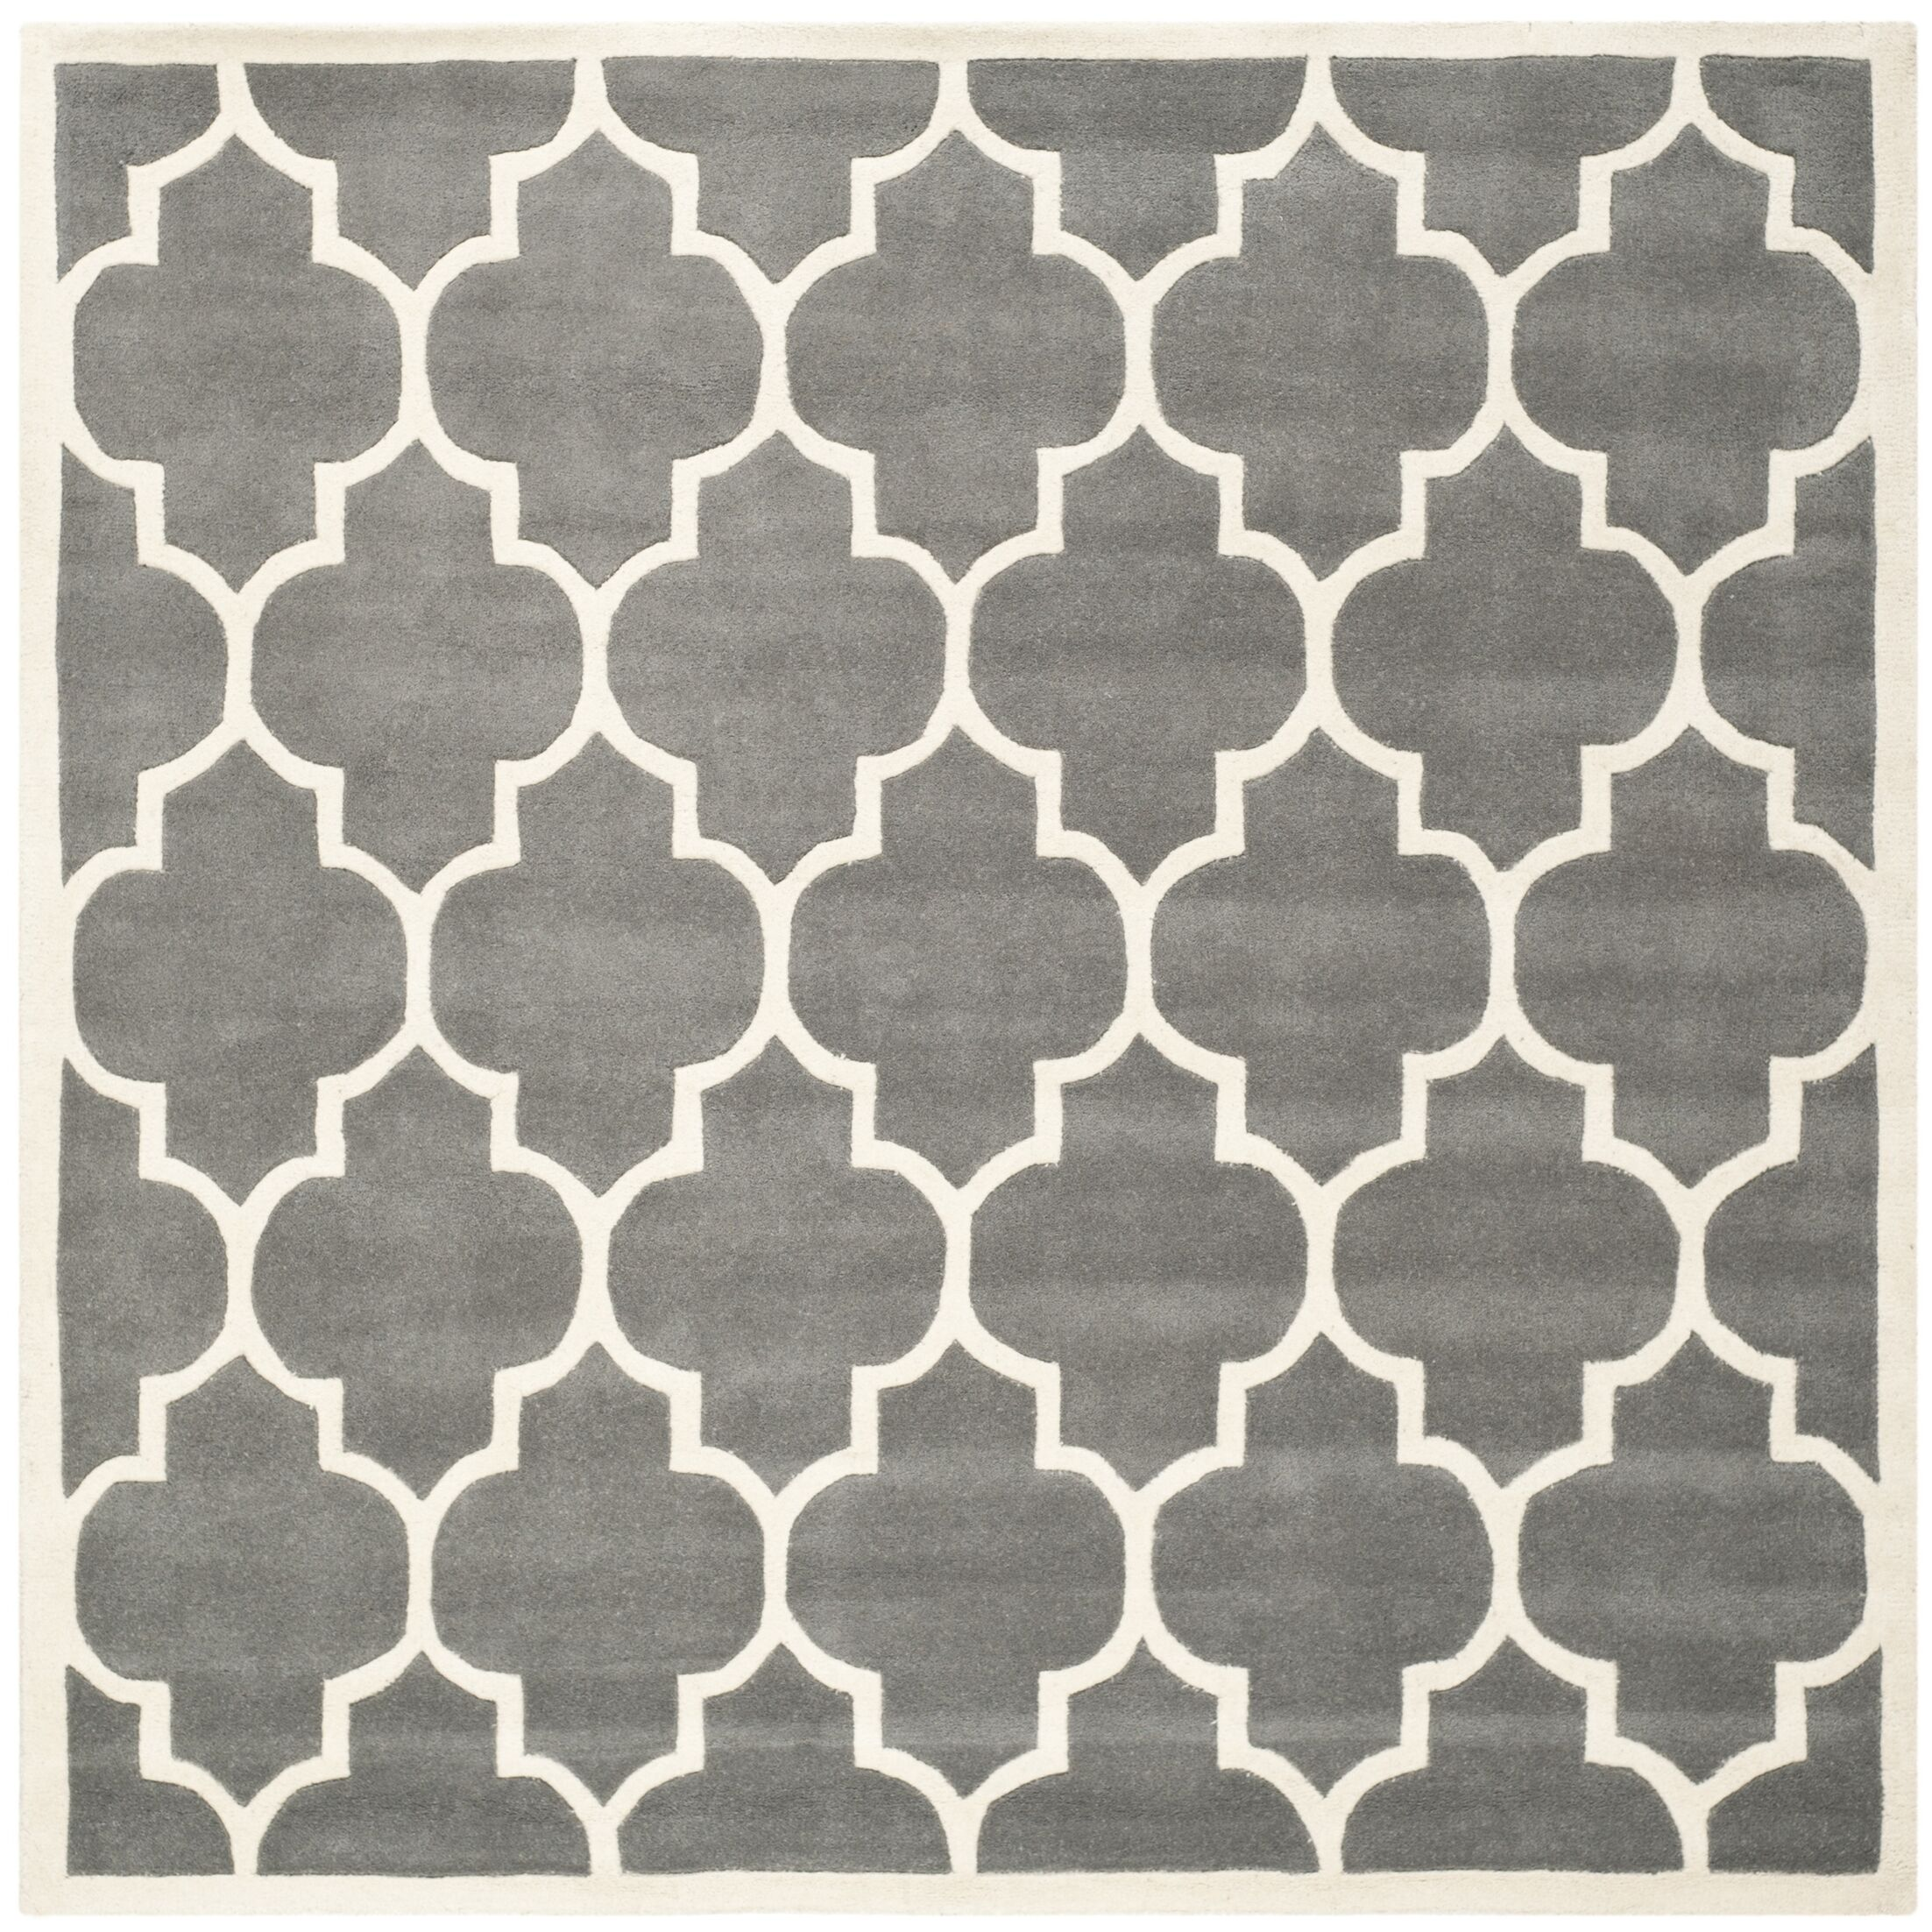 Wilkin Hand-Tufted Wool Dark Gray Area Rug Rug Size: Square 7'